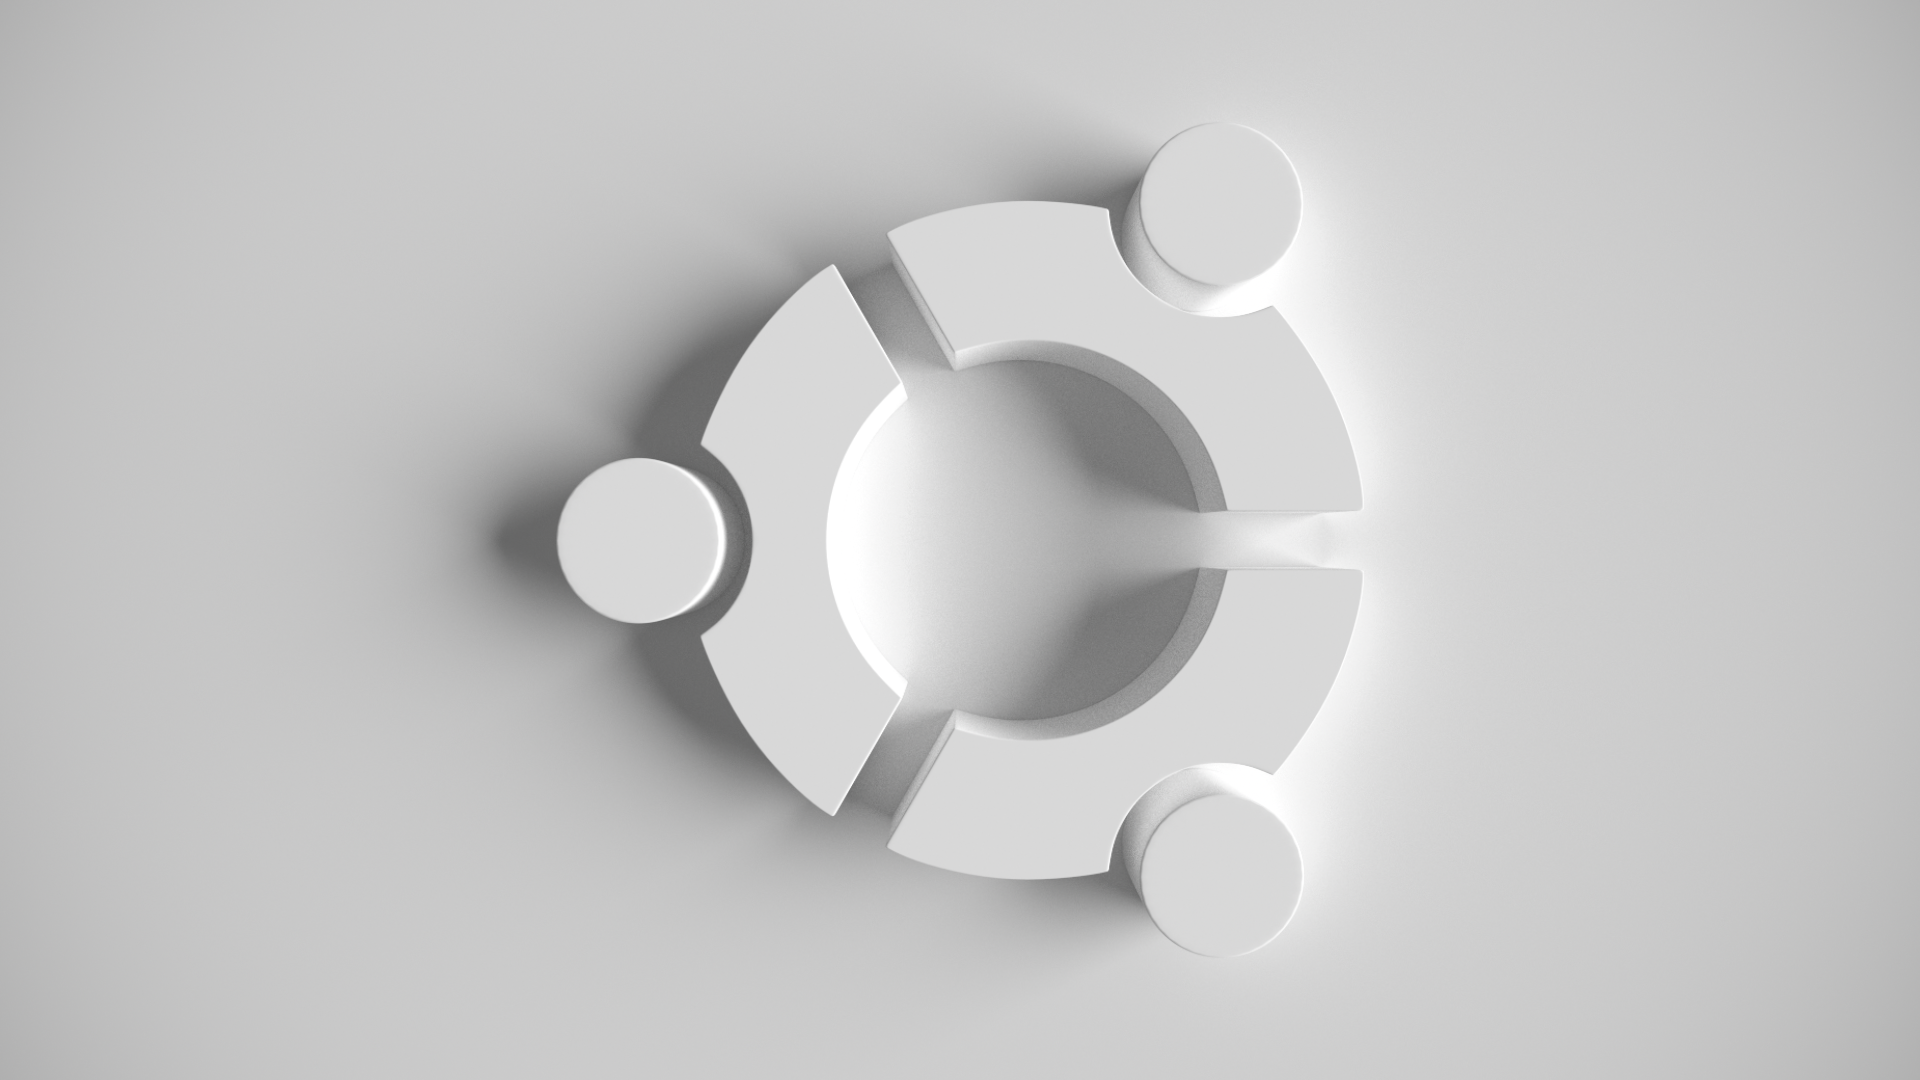 Ubuntu white wallpaper by thebigdavec on deviantart for Wallpaper 3d white